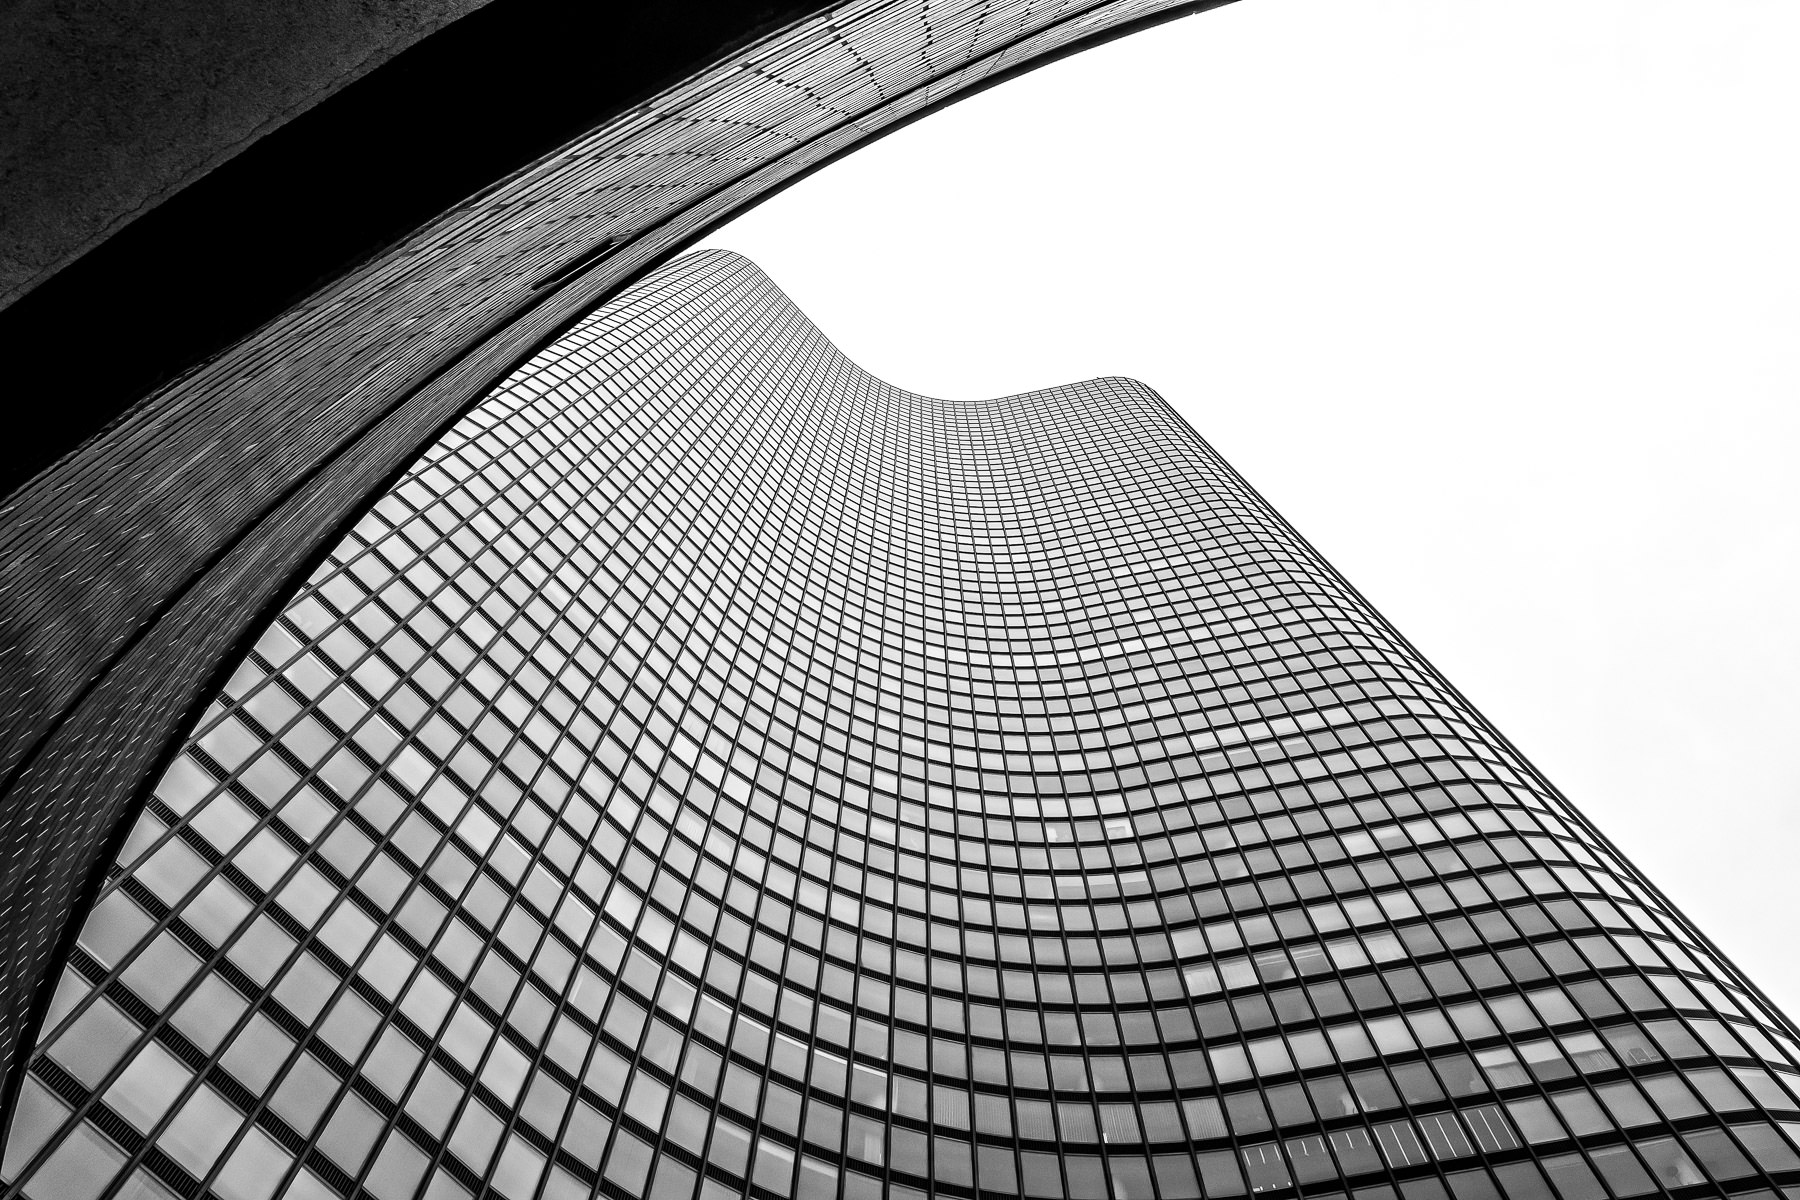 The graceful curves of Chicago's Lake Point Tower rise into the overcast sky.